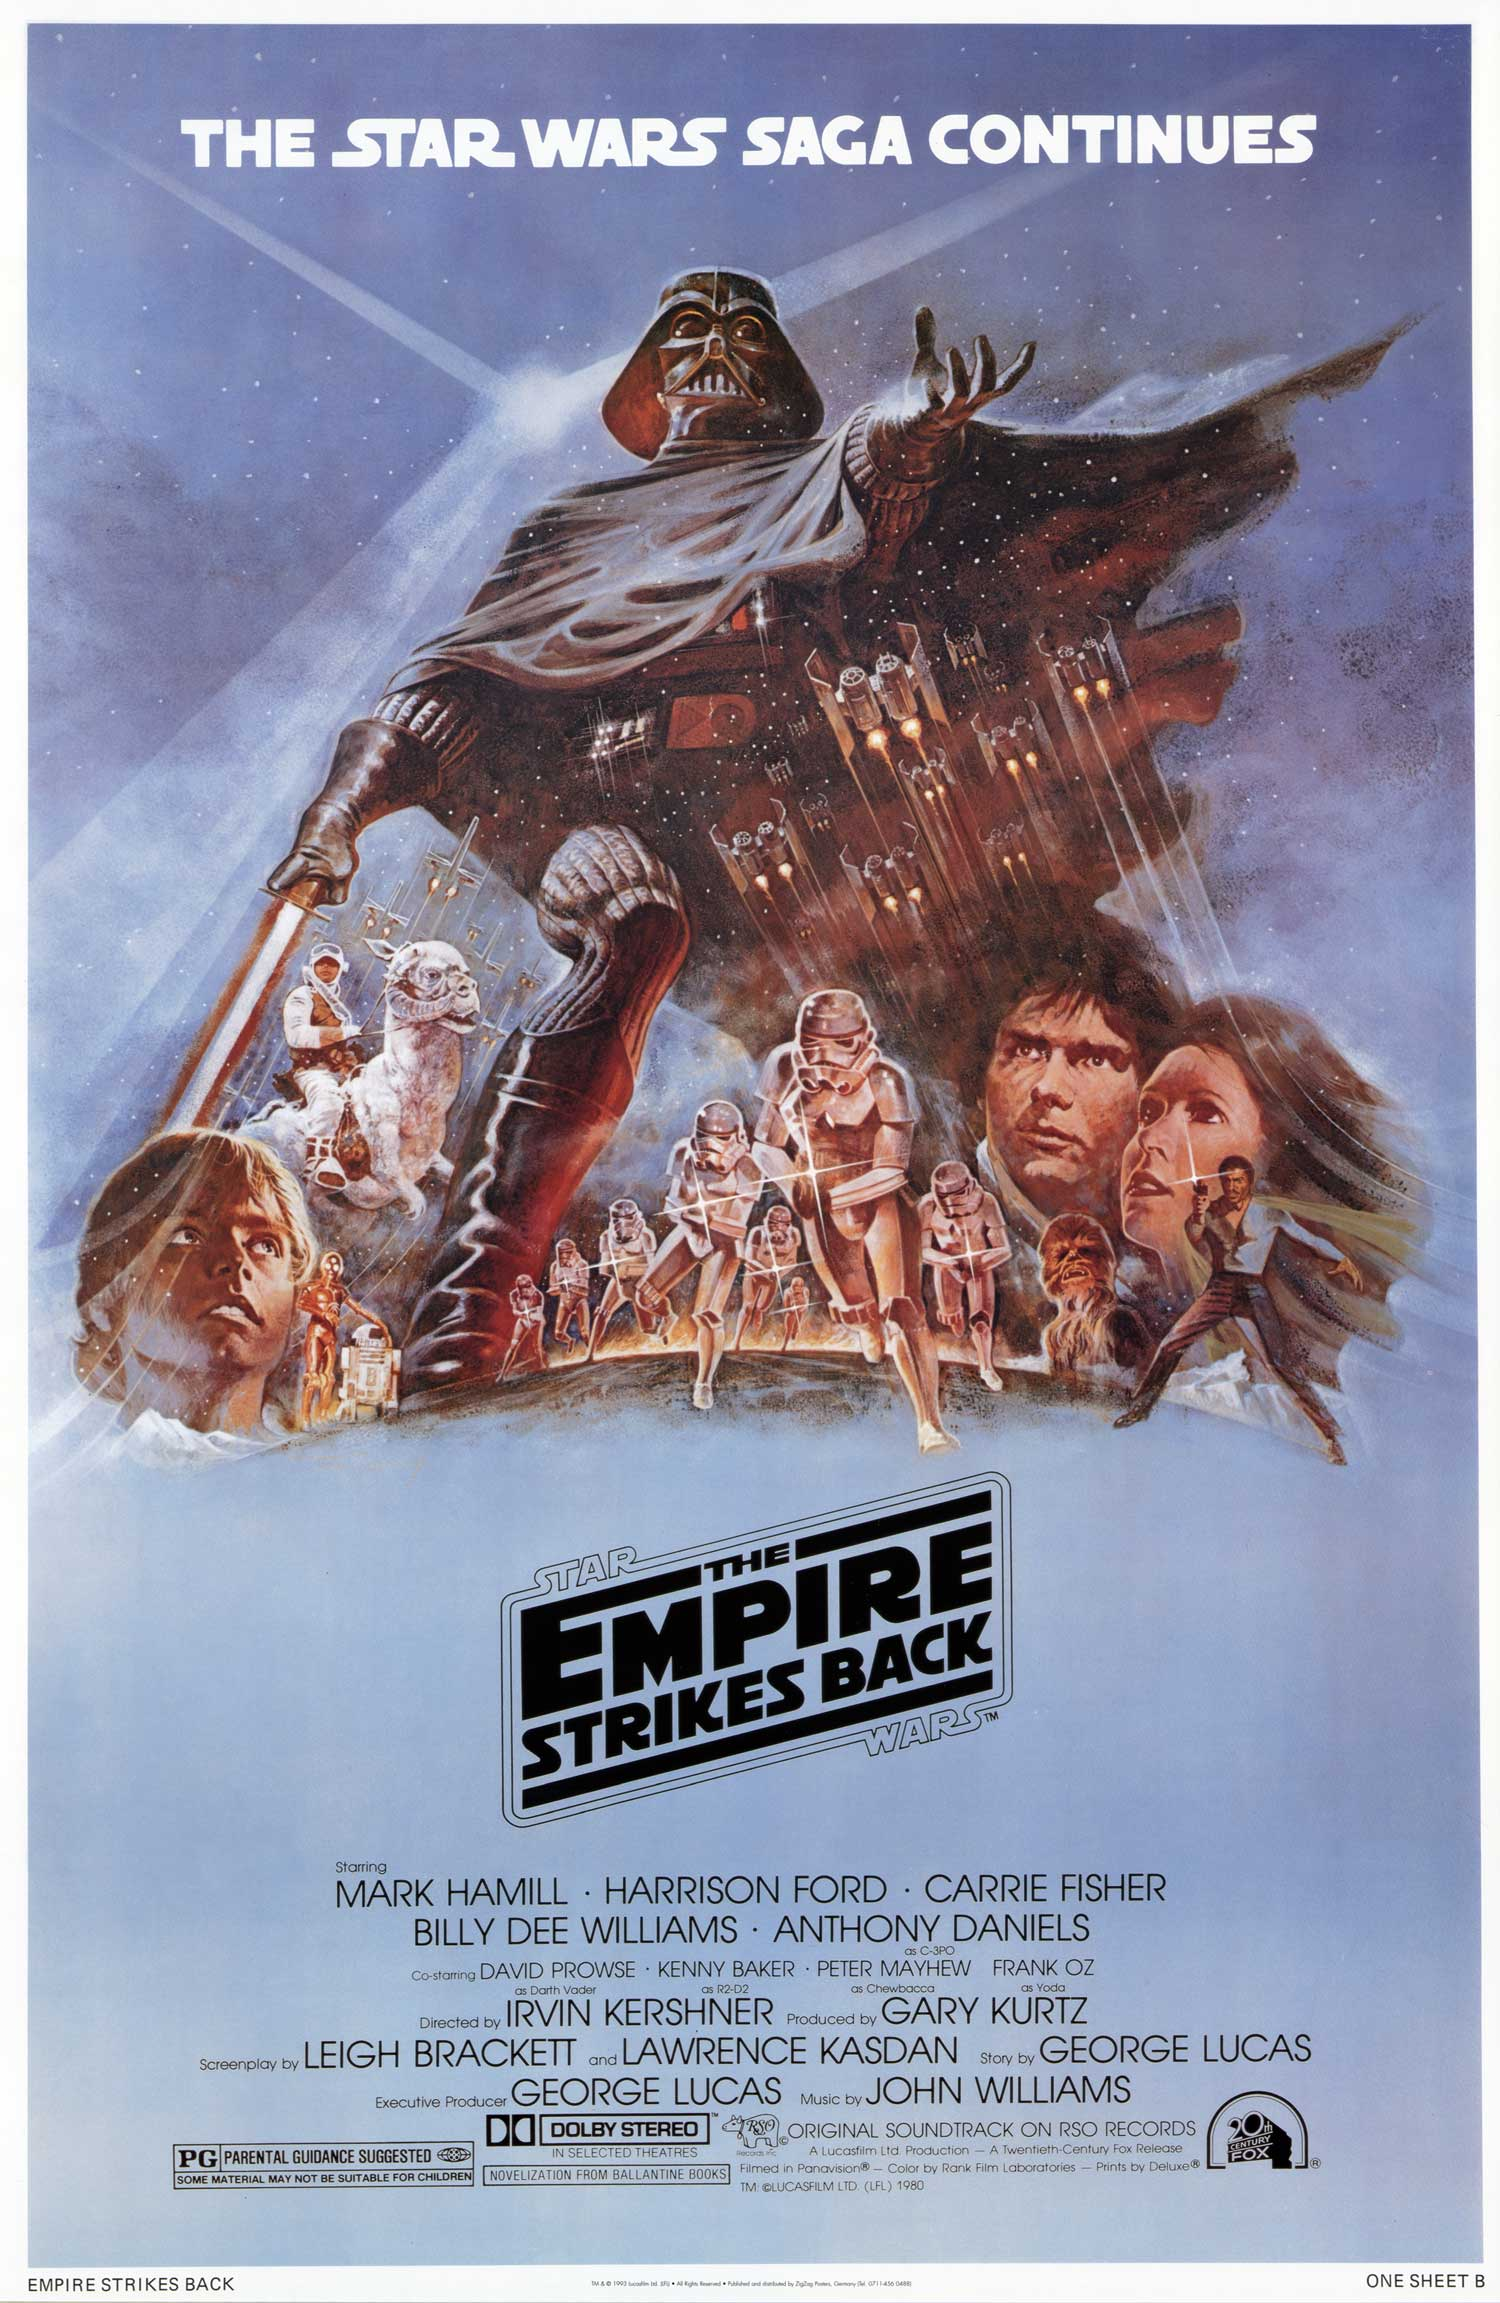 Star Wars The Empire Strikes Back movie poster Star Wars   The Empire Strikes Back movie poster